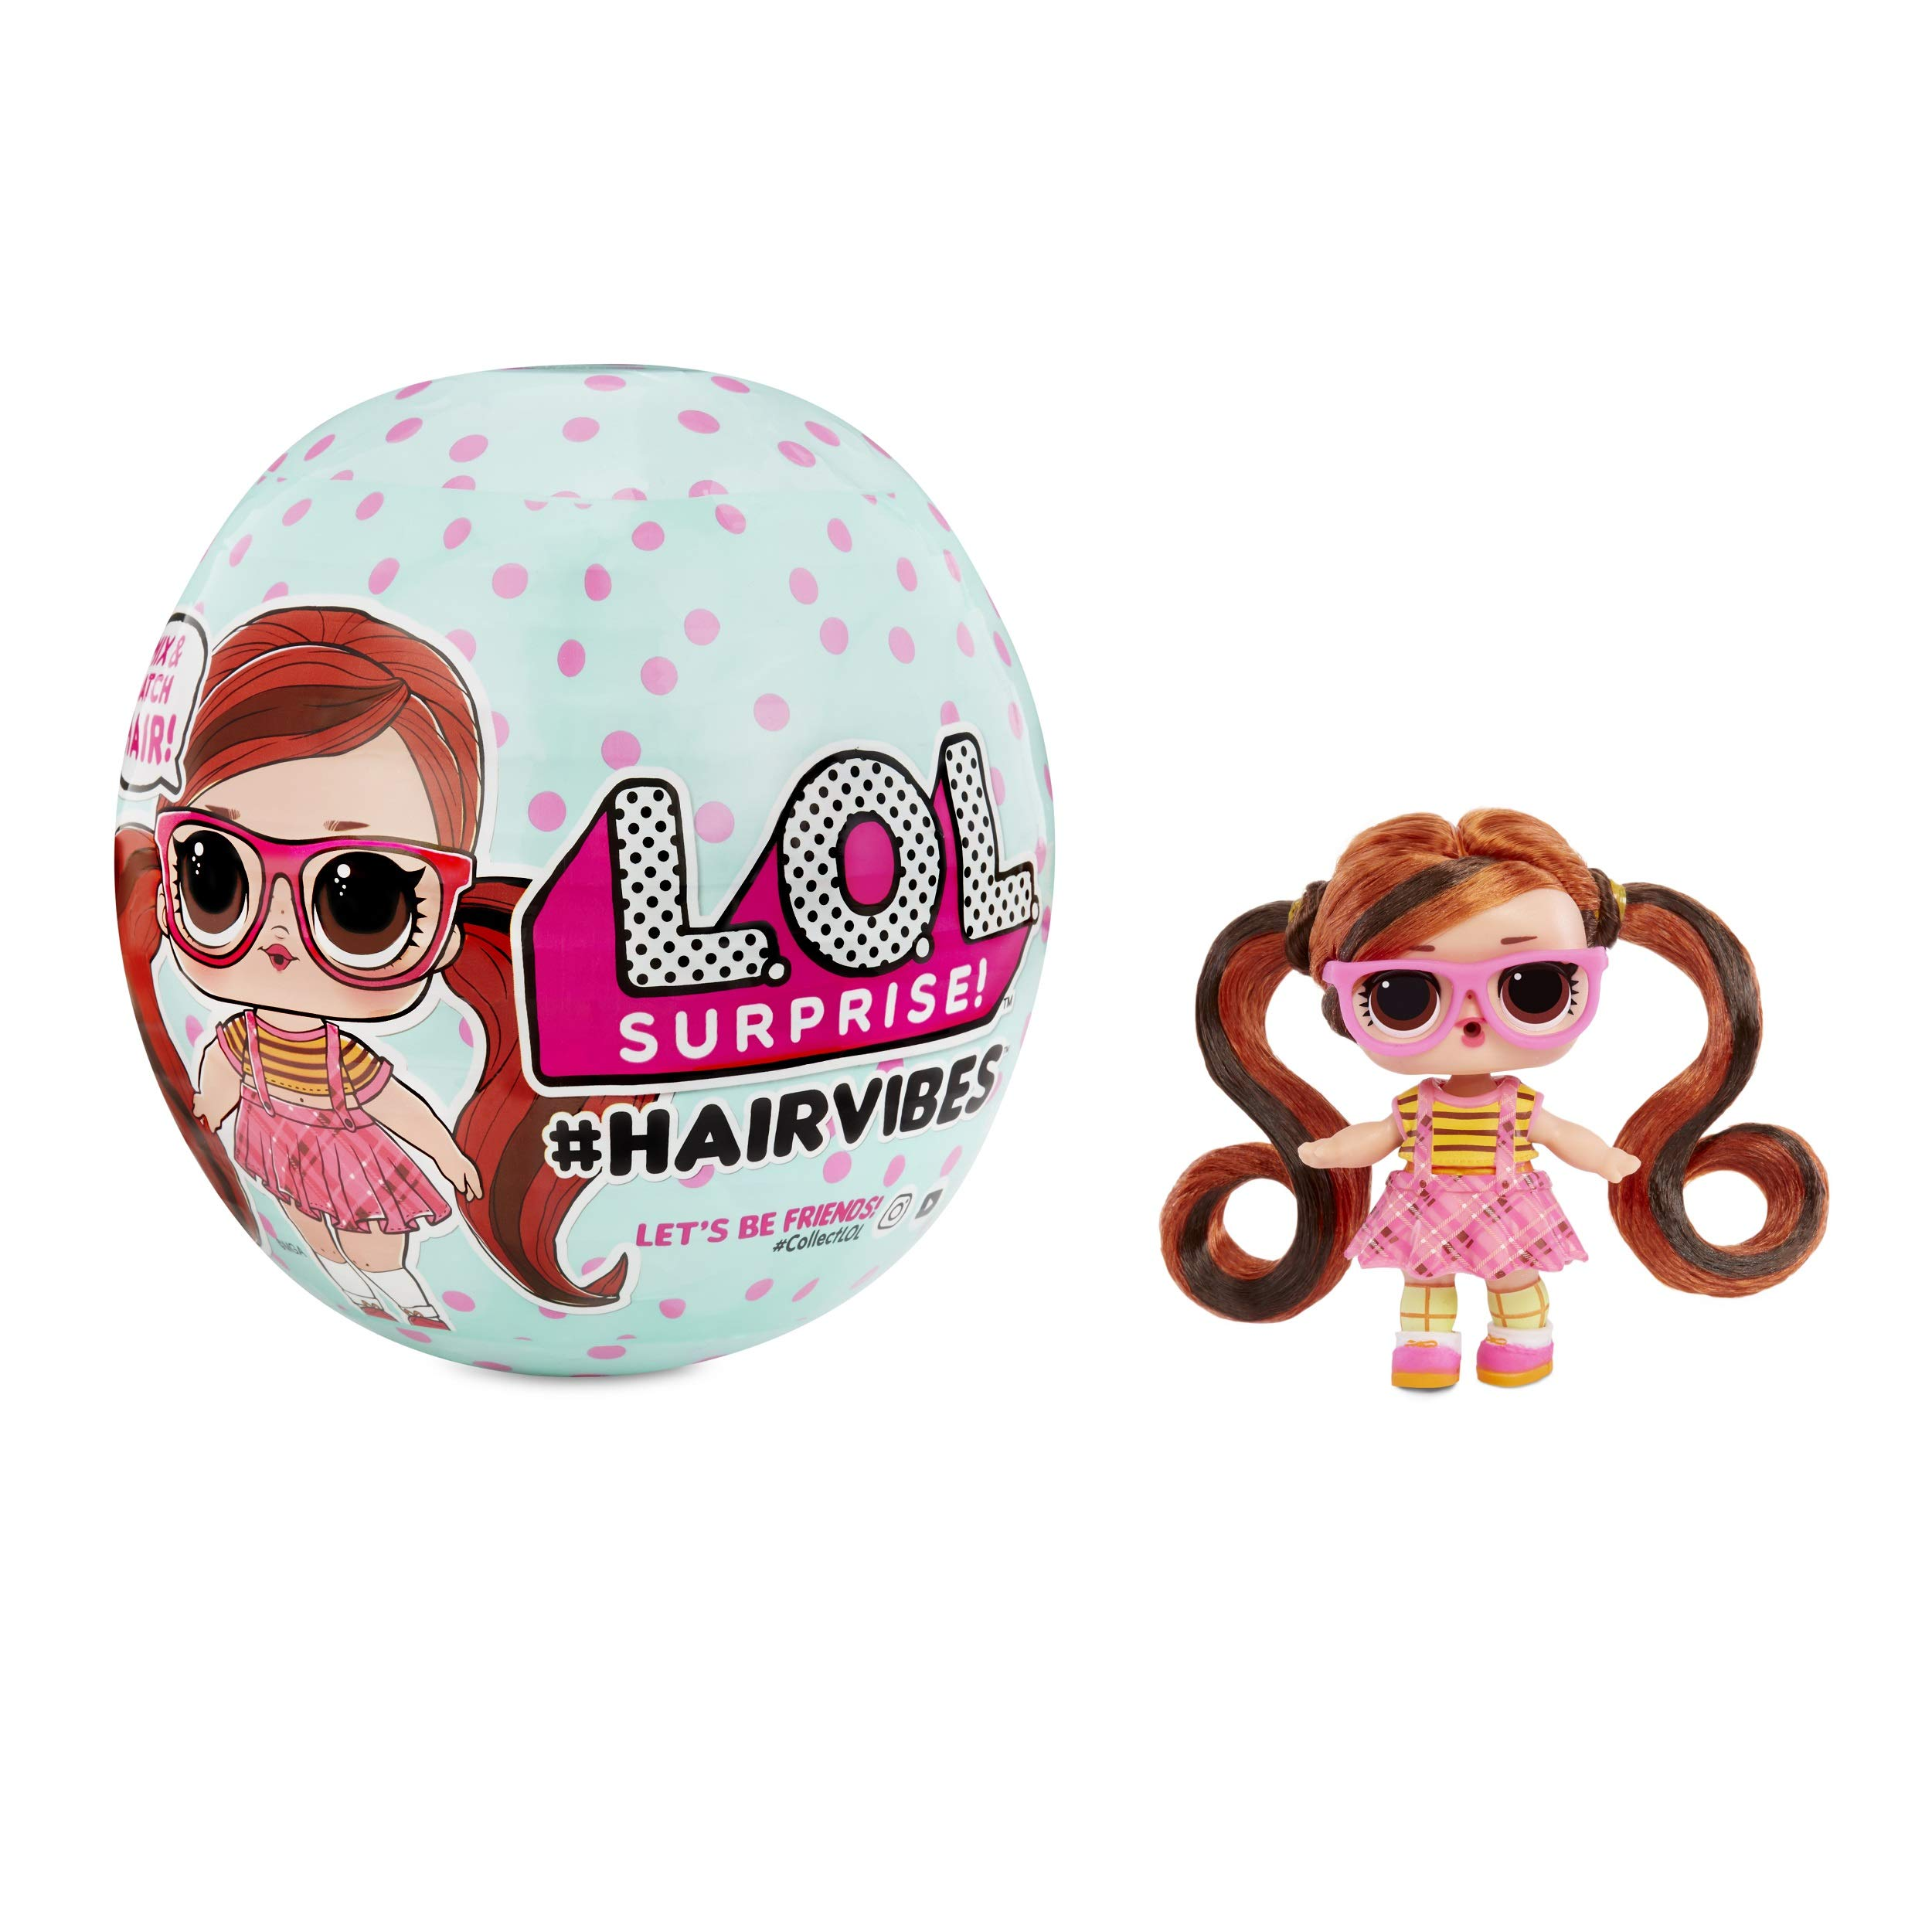 L.O.L 서프라이즈 헤어바이브 돌스 L.O.L Surprise! Hairvibes Dolls with 15 Surprises & Mix & Match Hairpieces